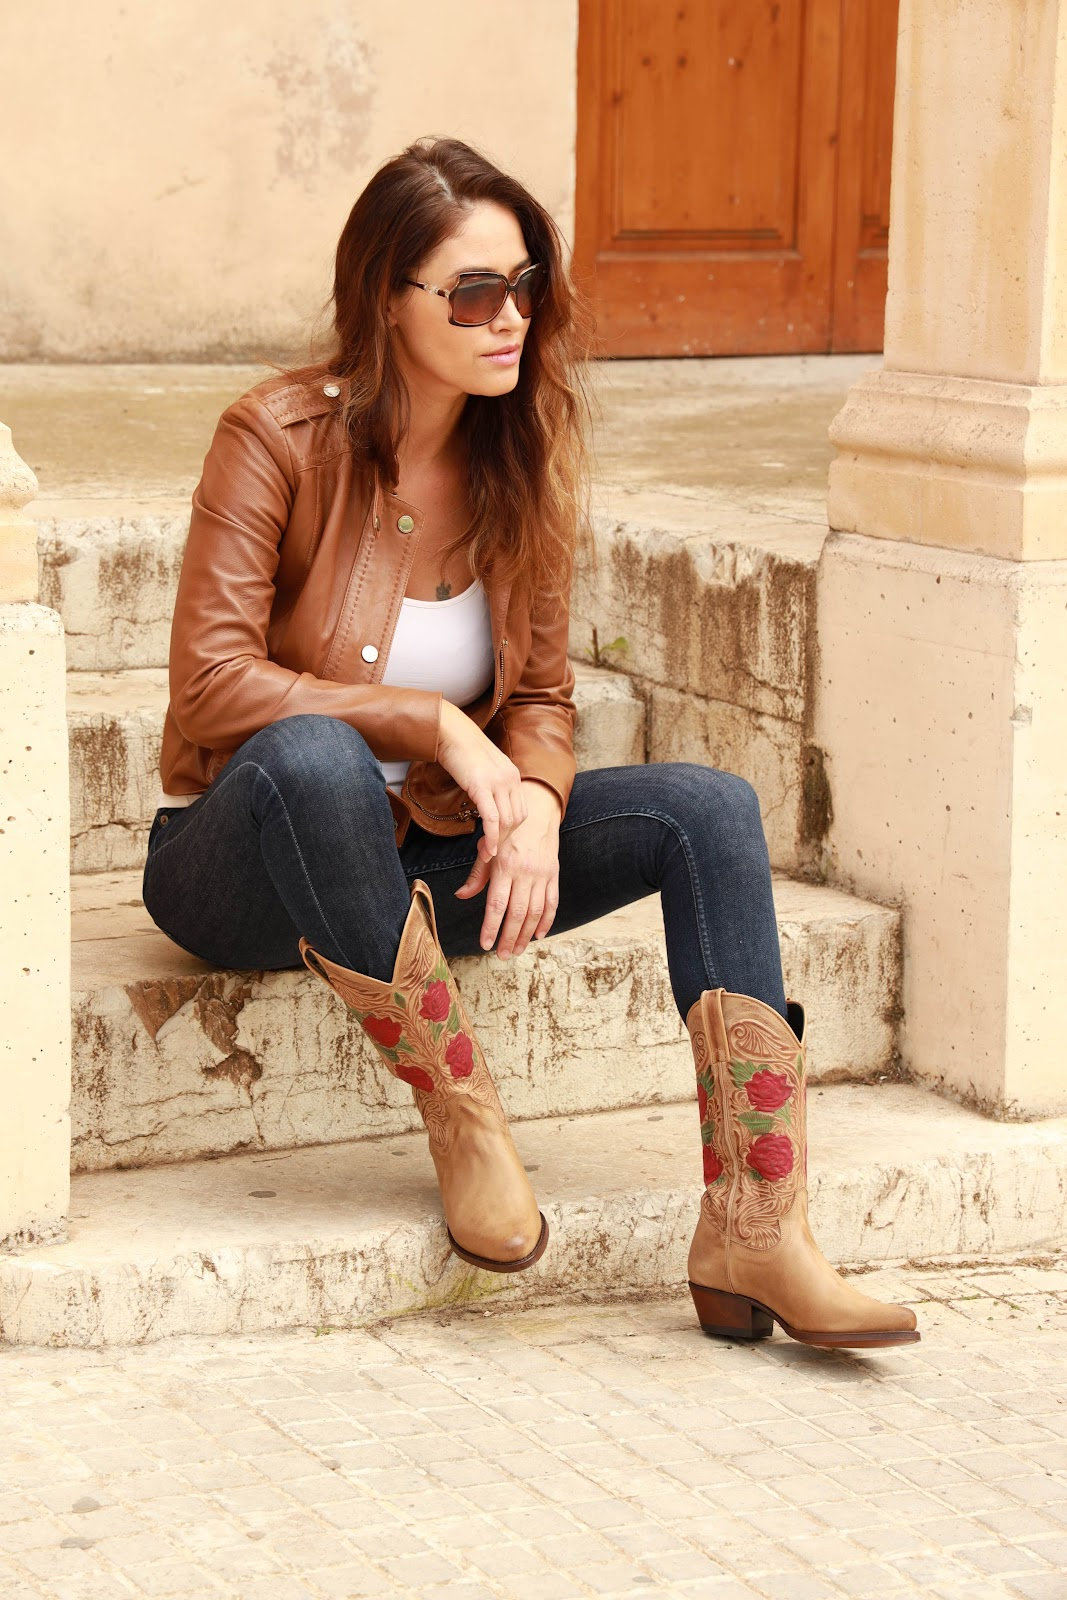 Cowboy boots and the cowboy look - With basics